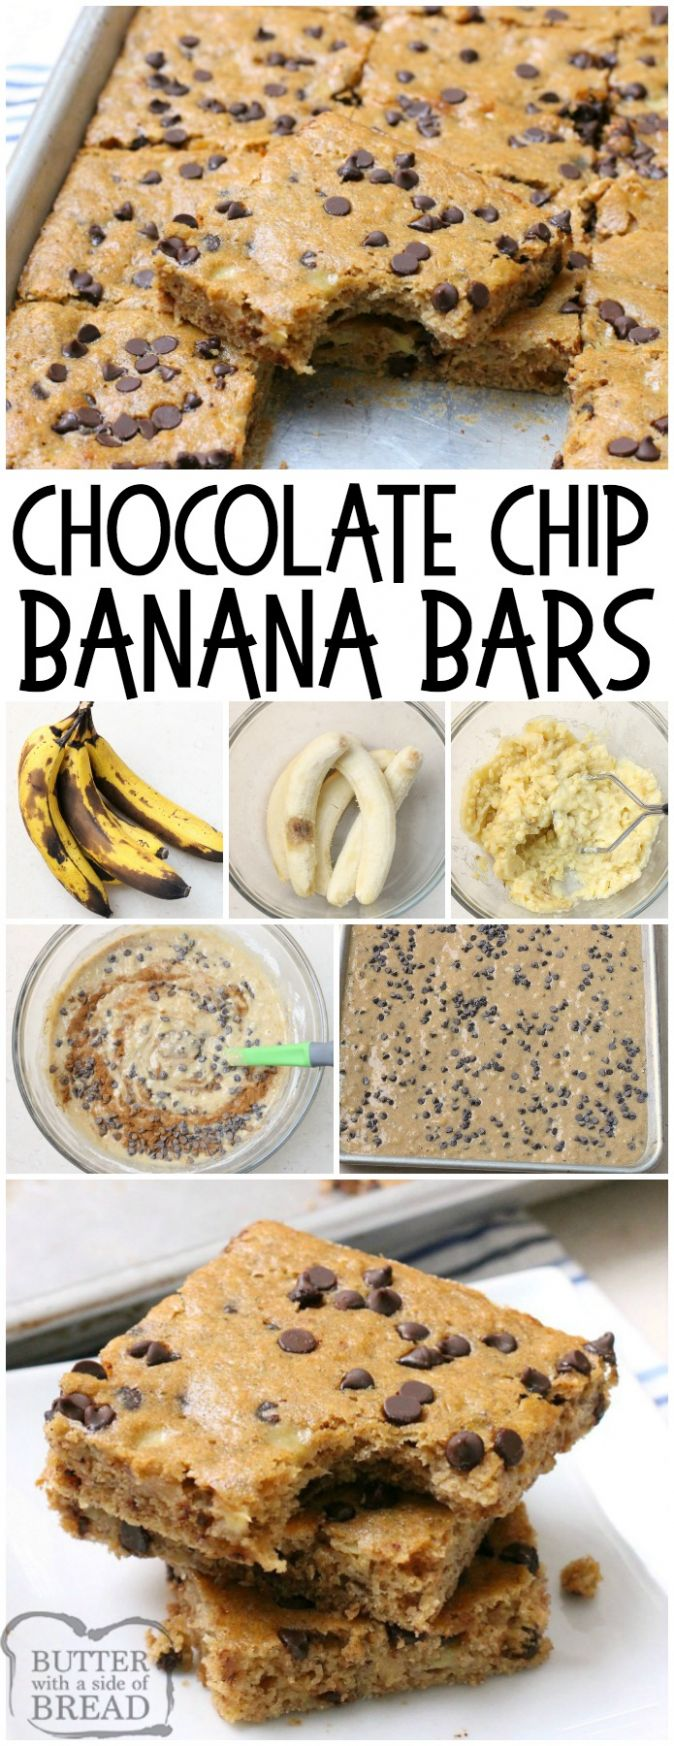 CHOCOLATE CHIP BANANA BARS - Butter with a Side of Bread - Simple Recipes Using Bananas